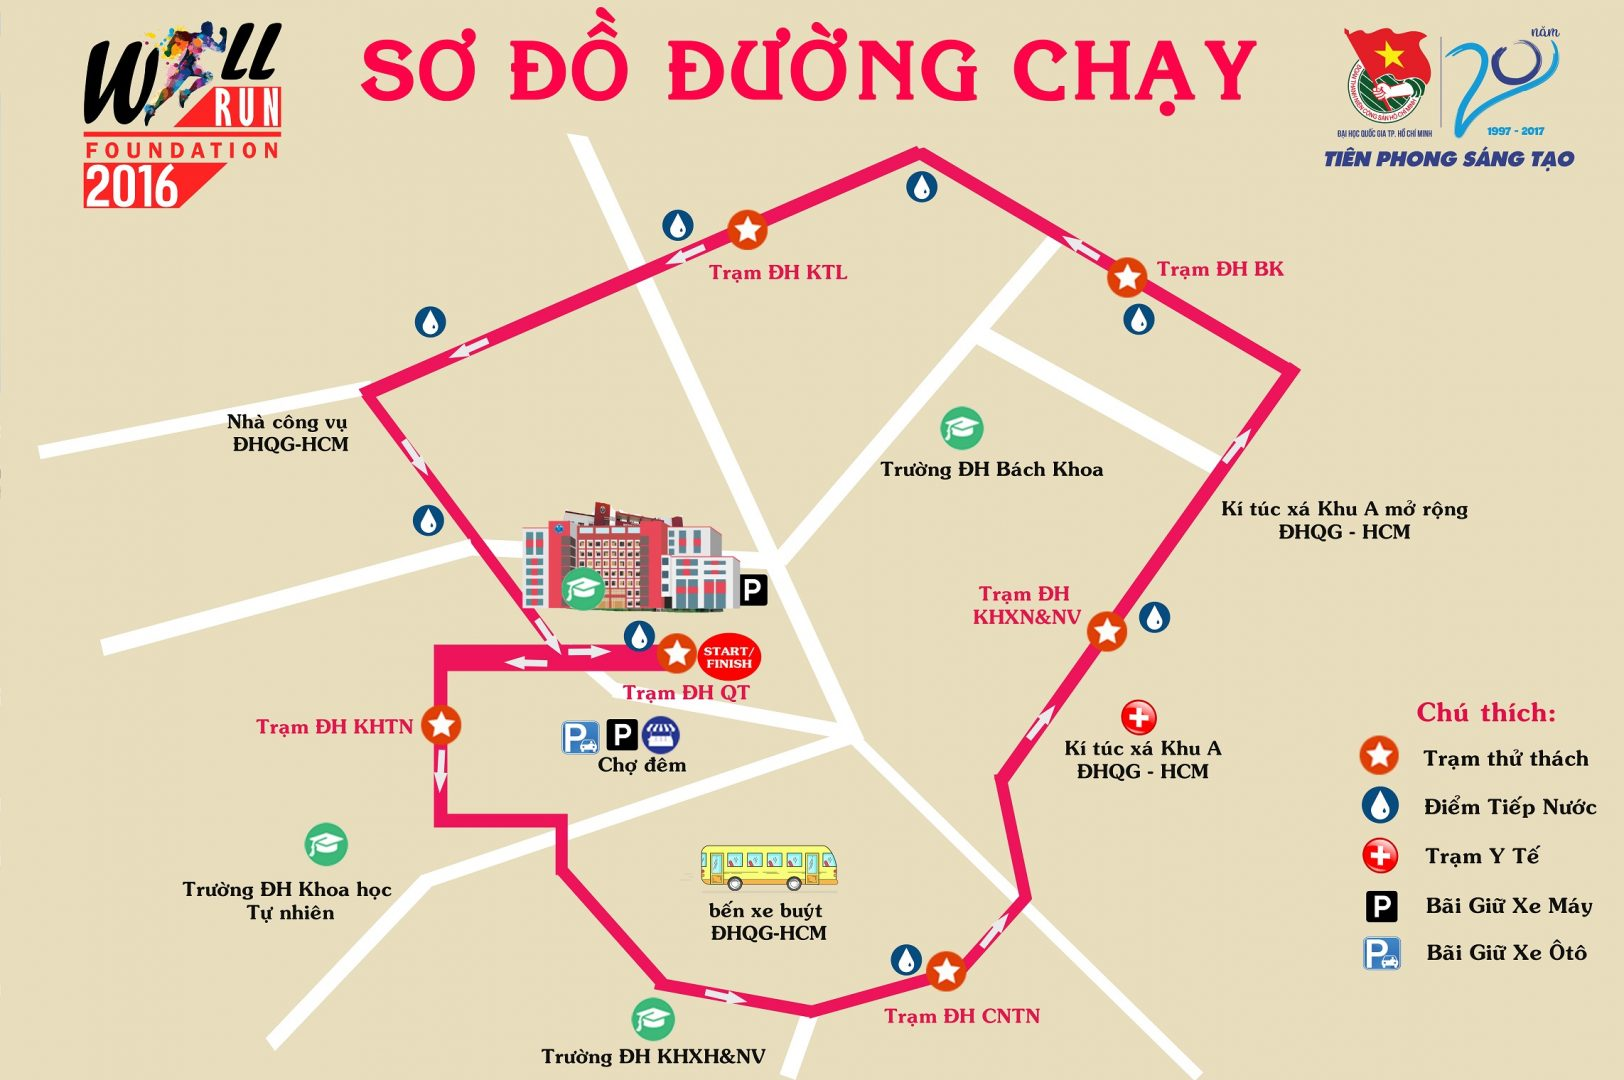 so-do-duong-chay-resize